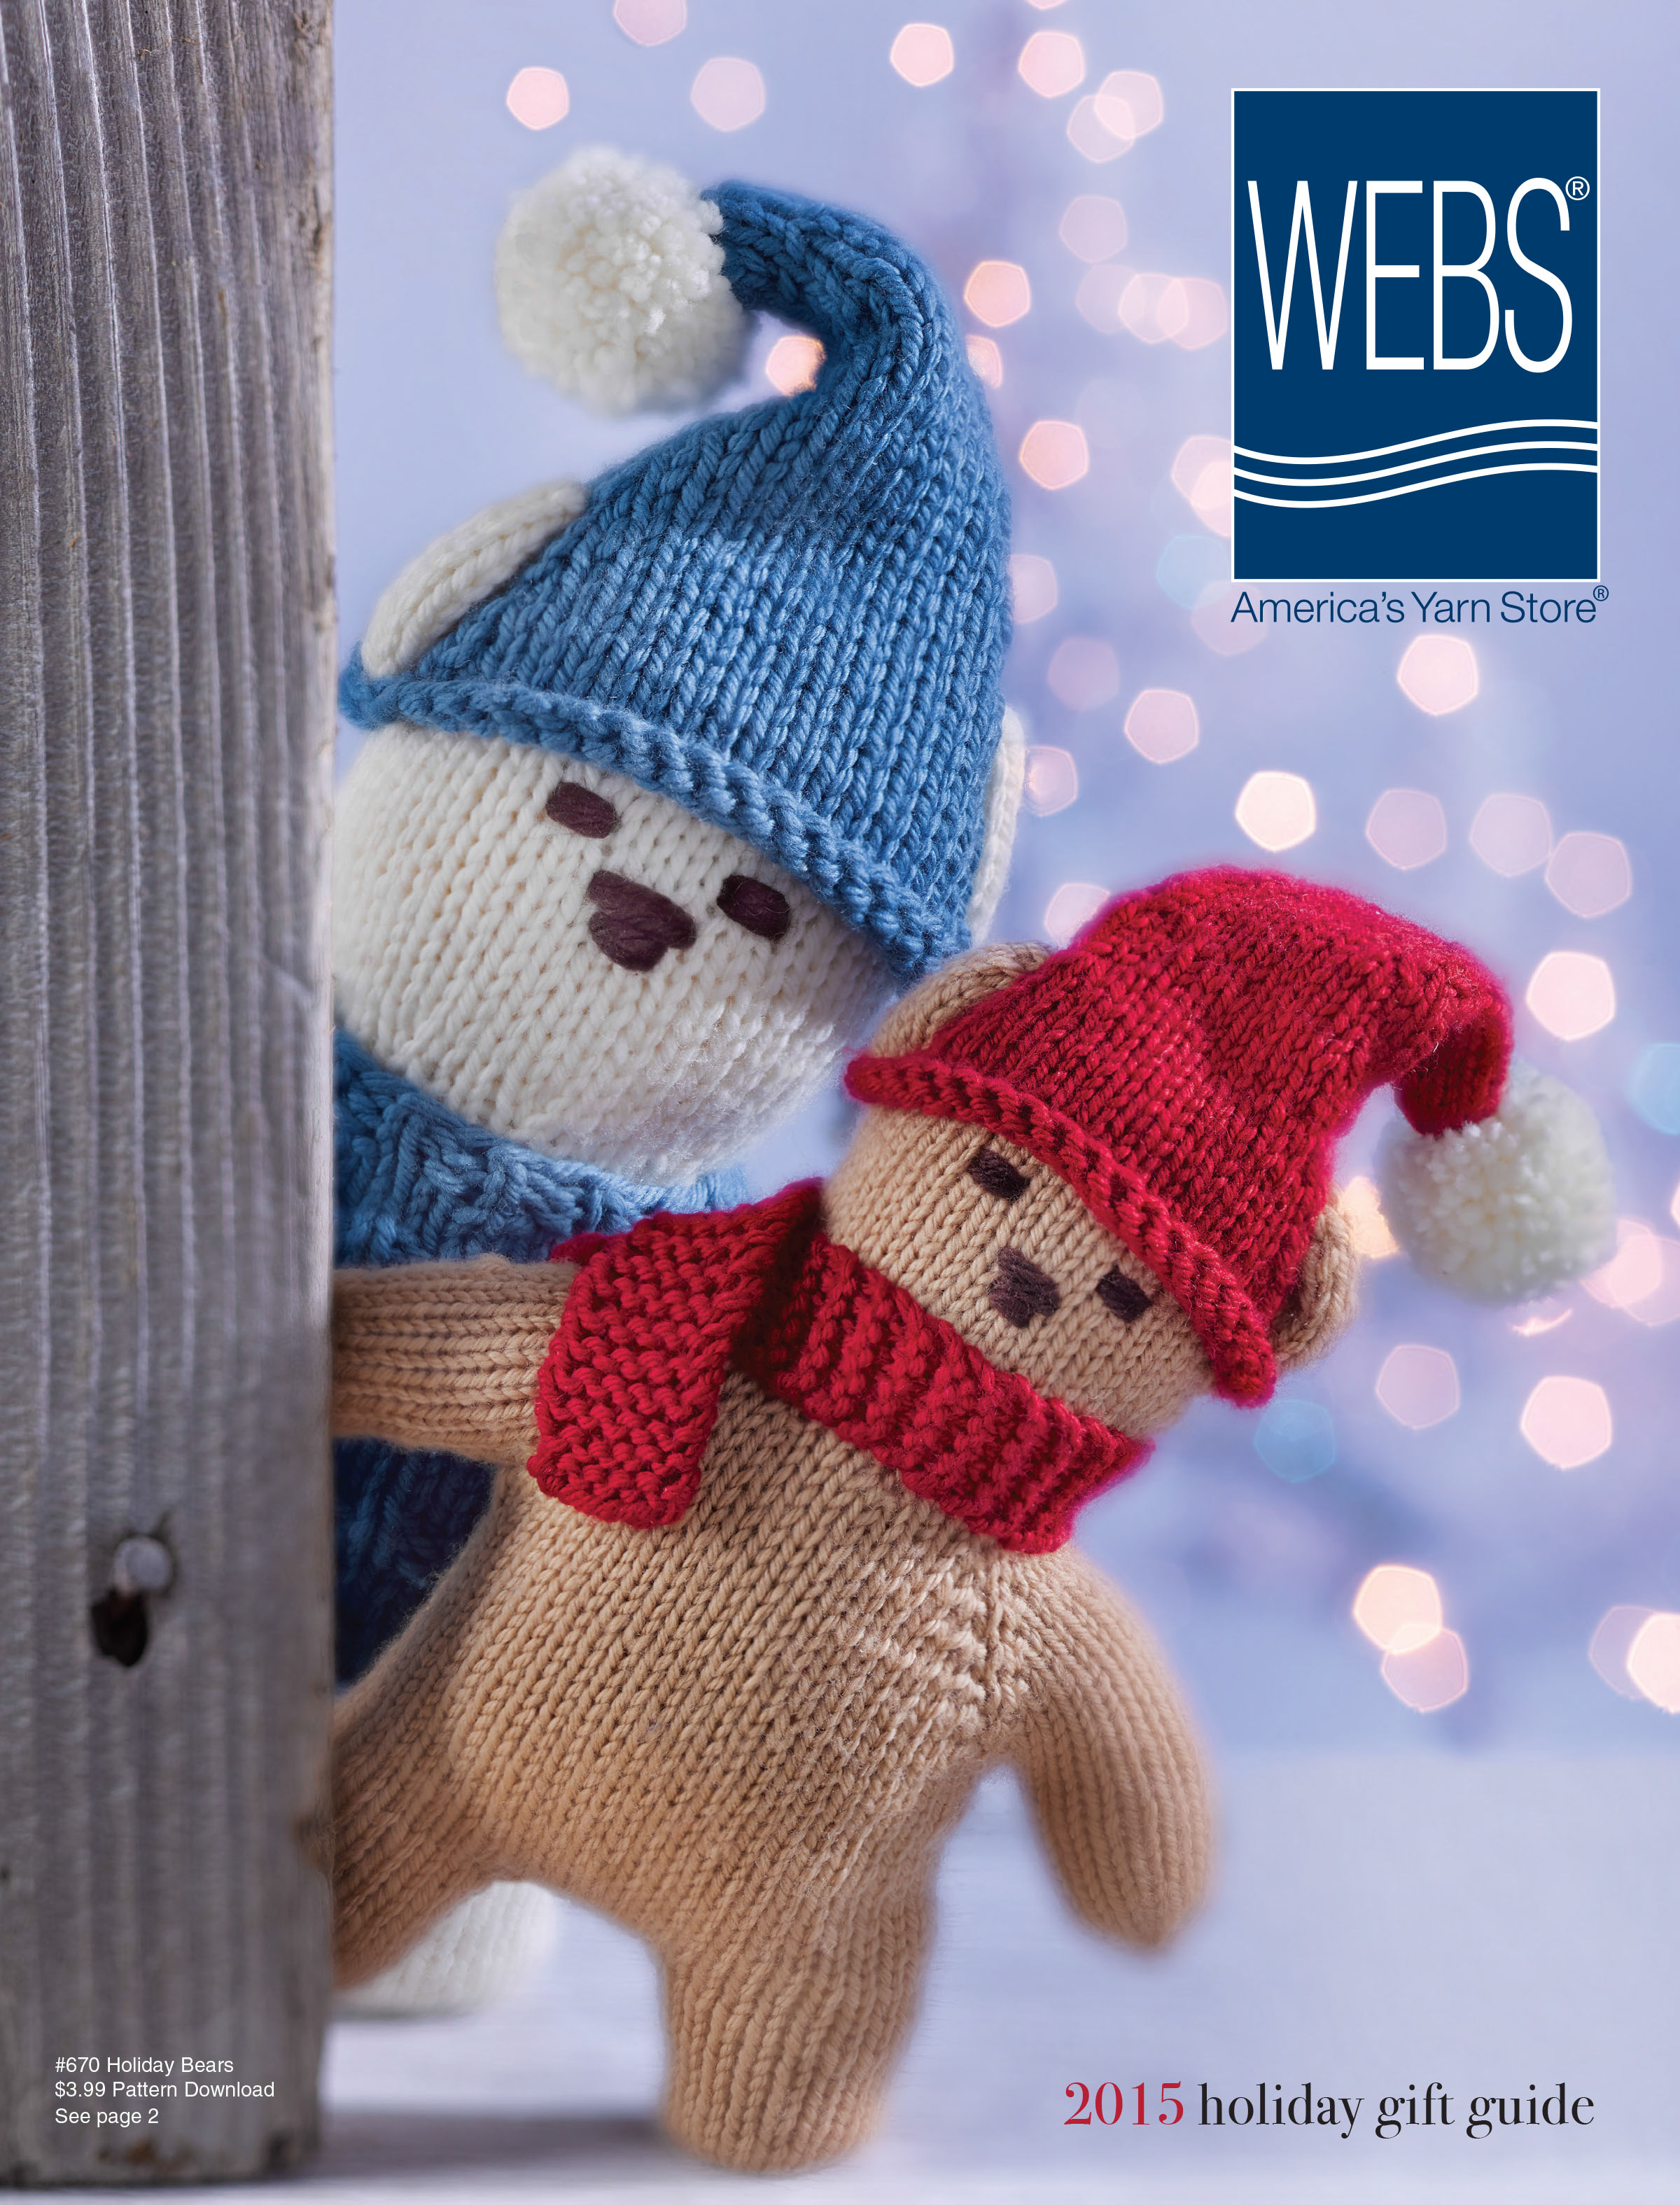 WEBS 2015 Holiday Catalog. Read more on the WEBS Blog at blog.yarn.com